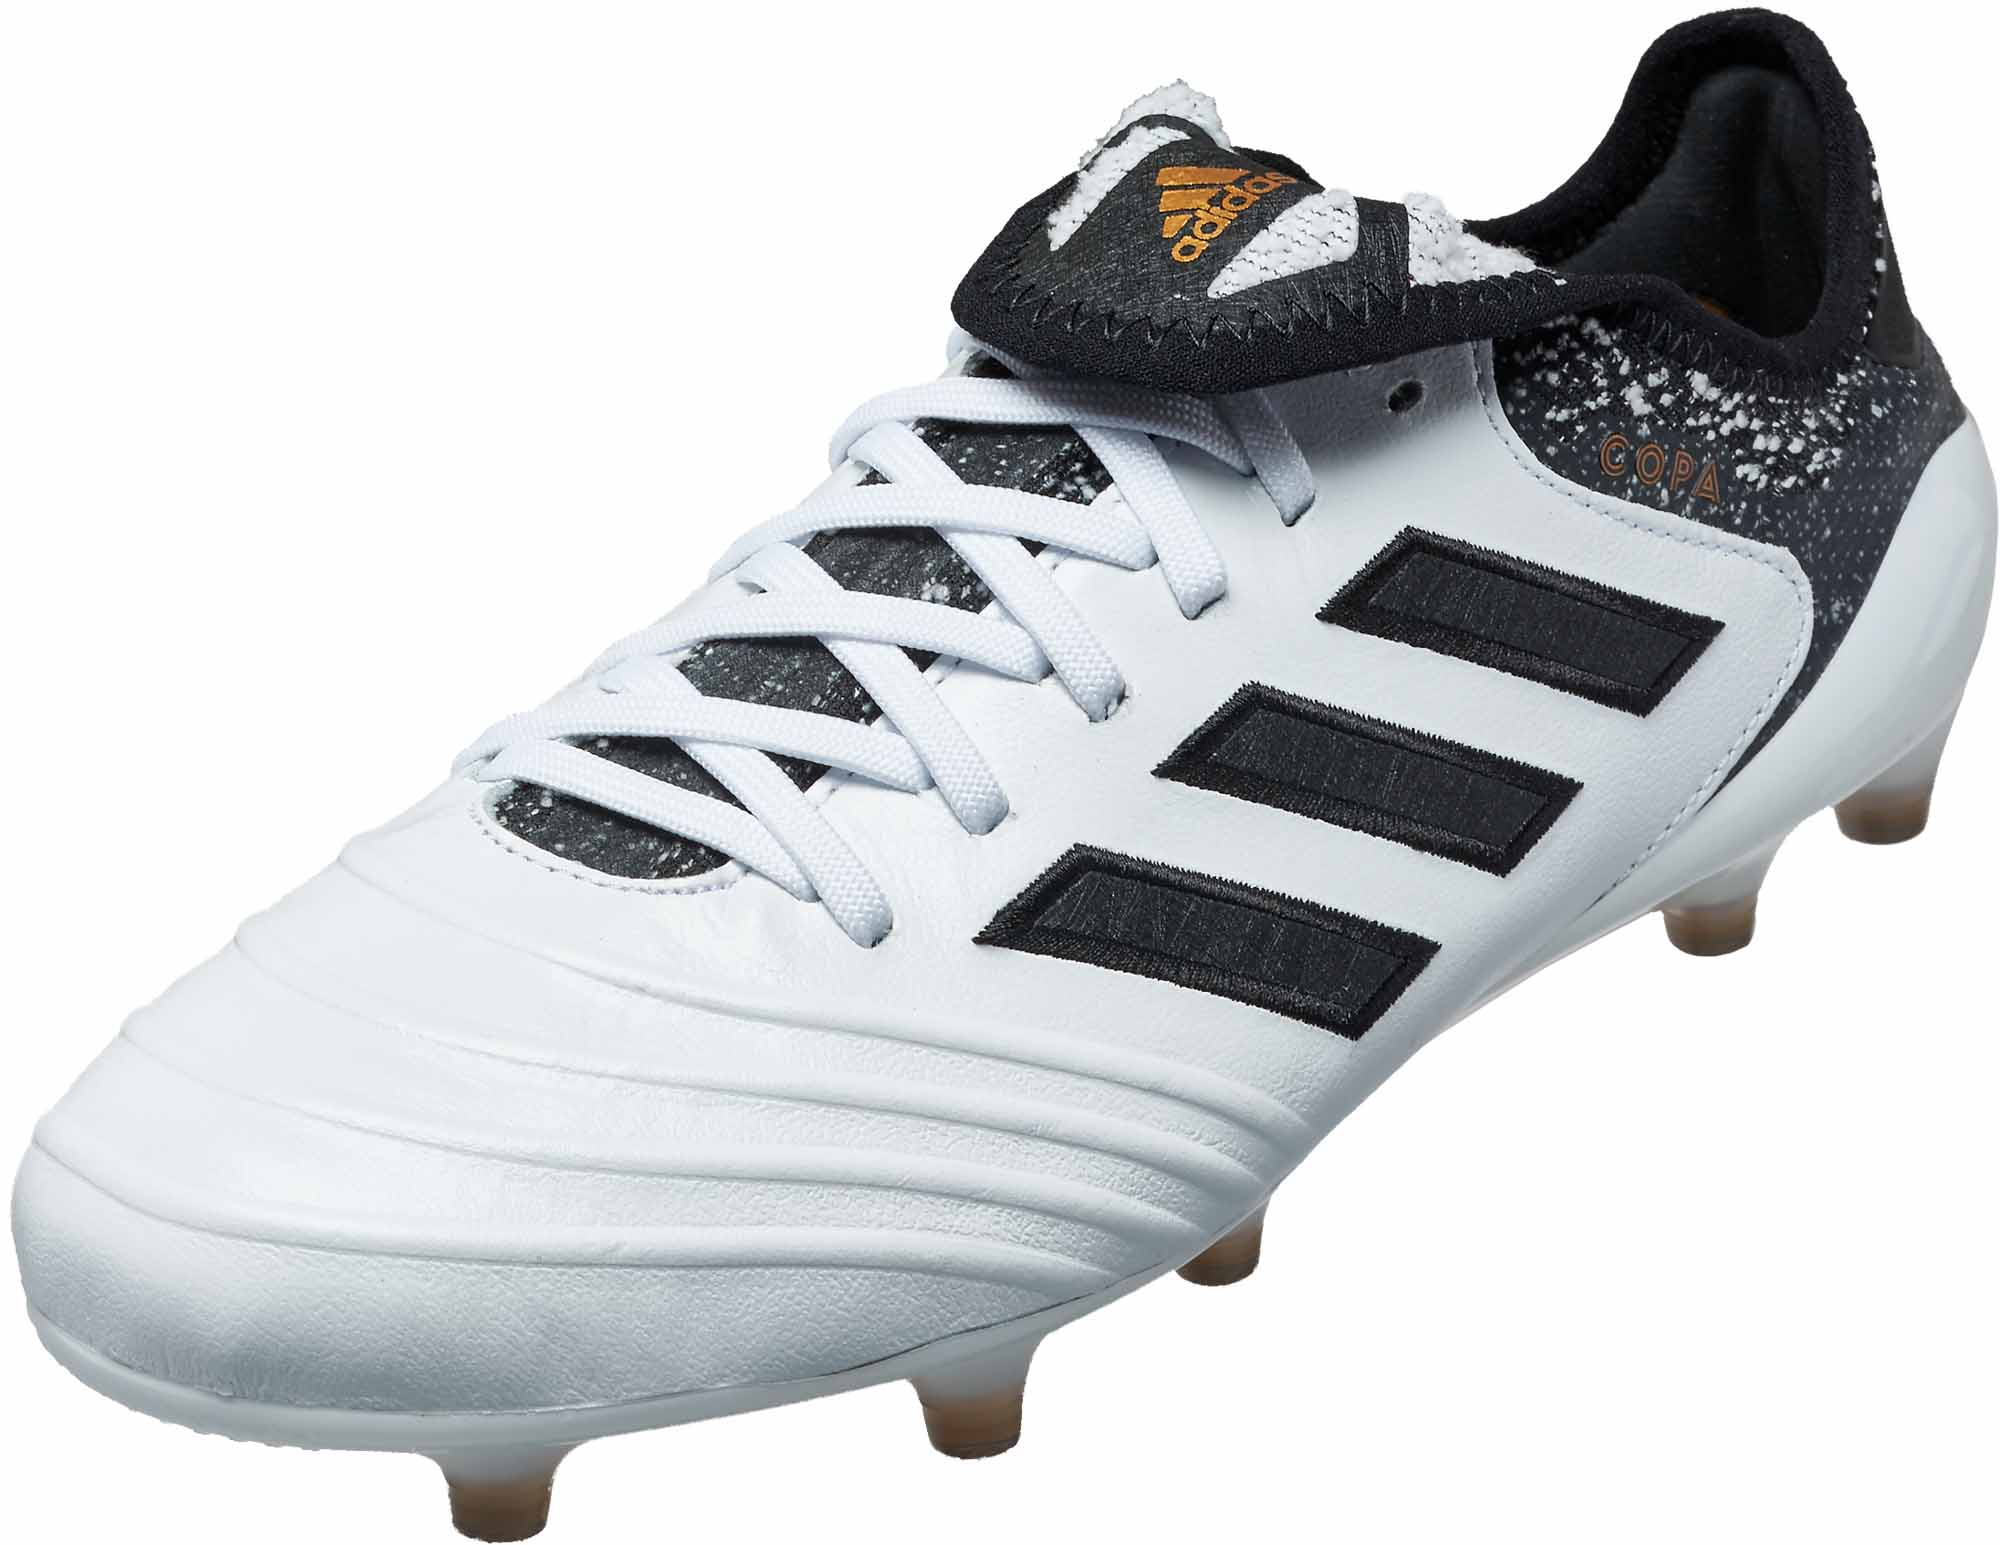 finest selection 5d906 60605 adidas Copa 18.1 FG – WhiteTactile Gold Metallic